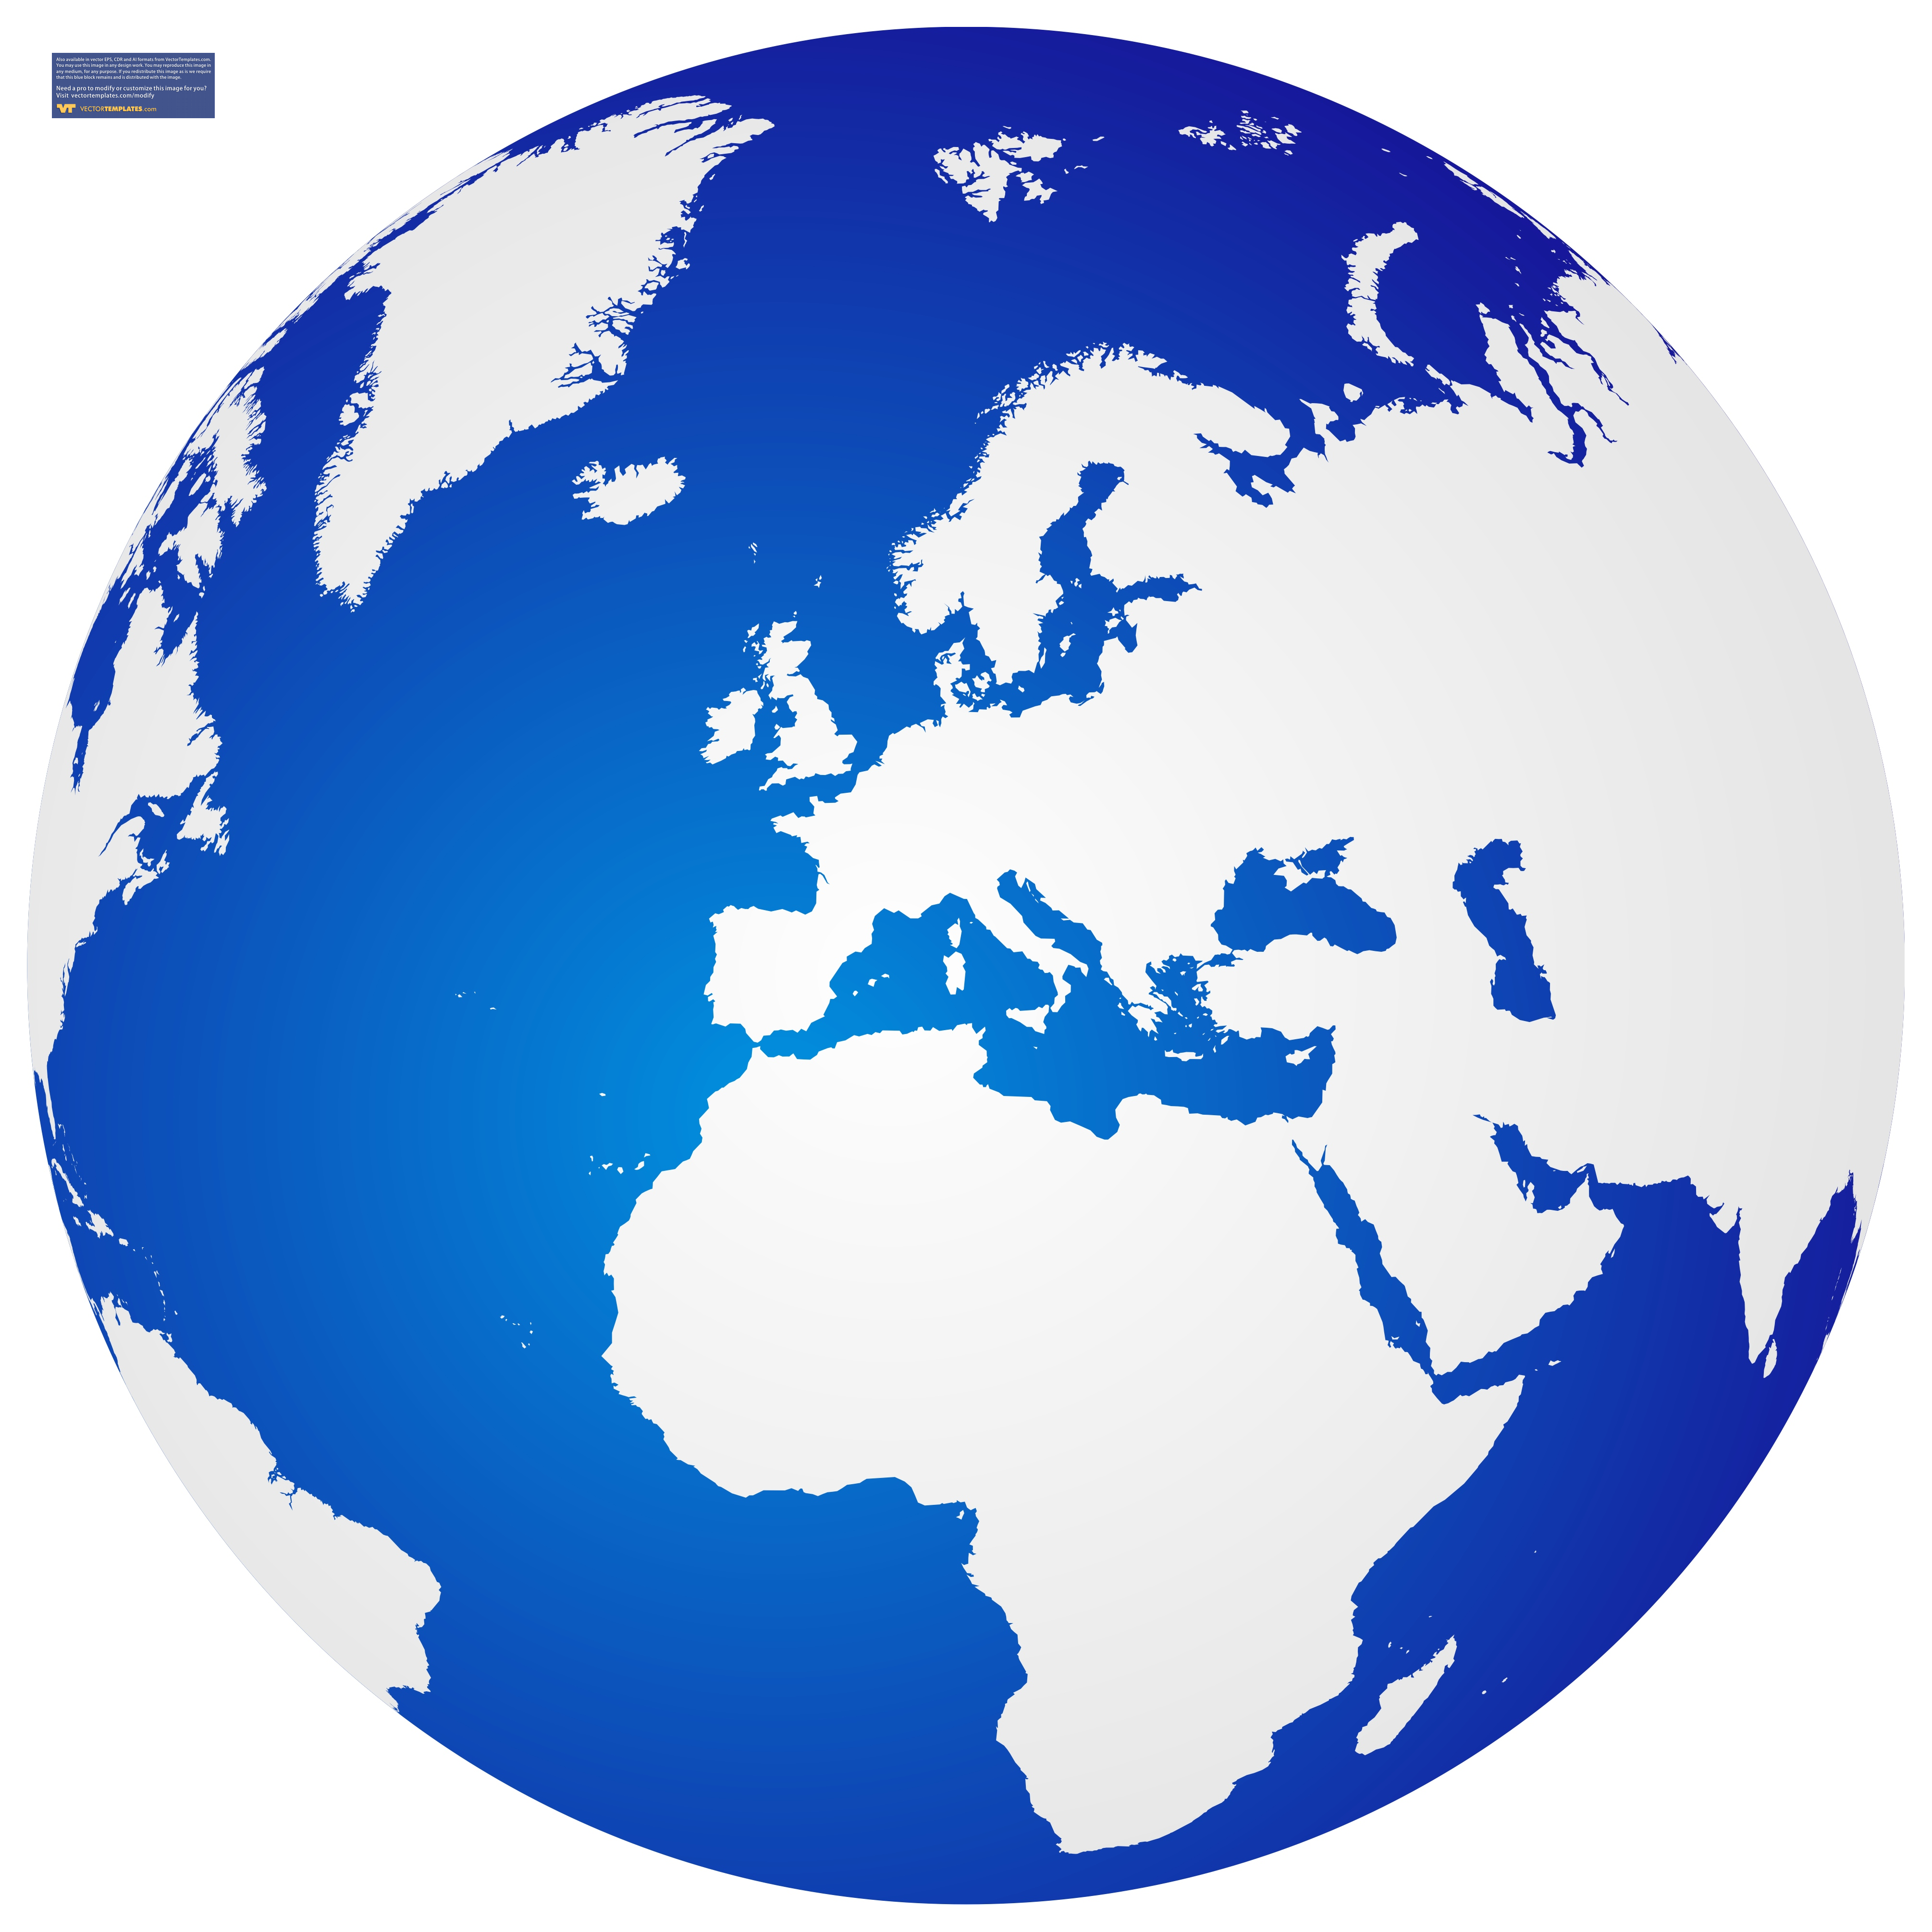 Globe hd png transparent globe hdg images pluspng view details acceptable use free download globe hd png gumiabroncs Gallery